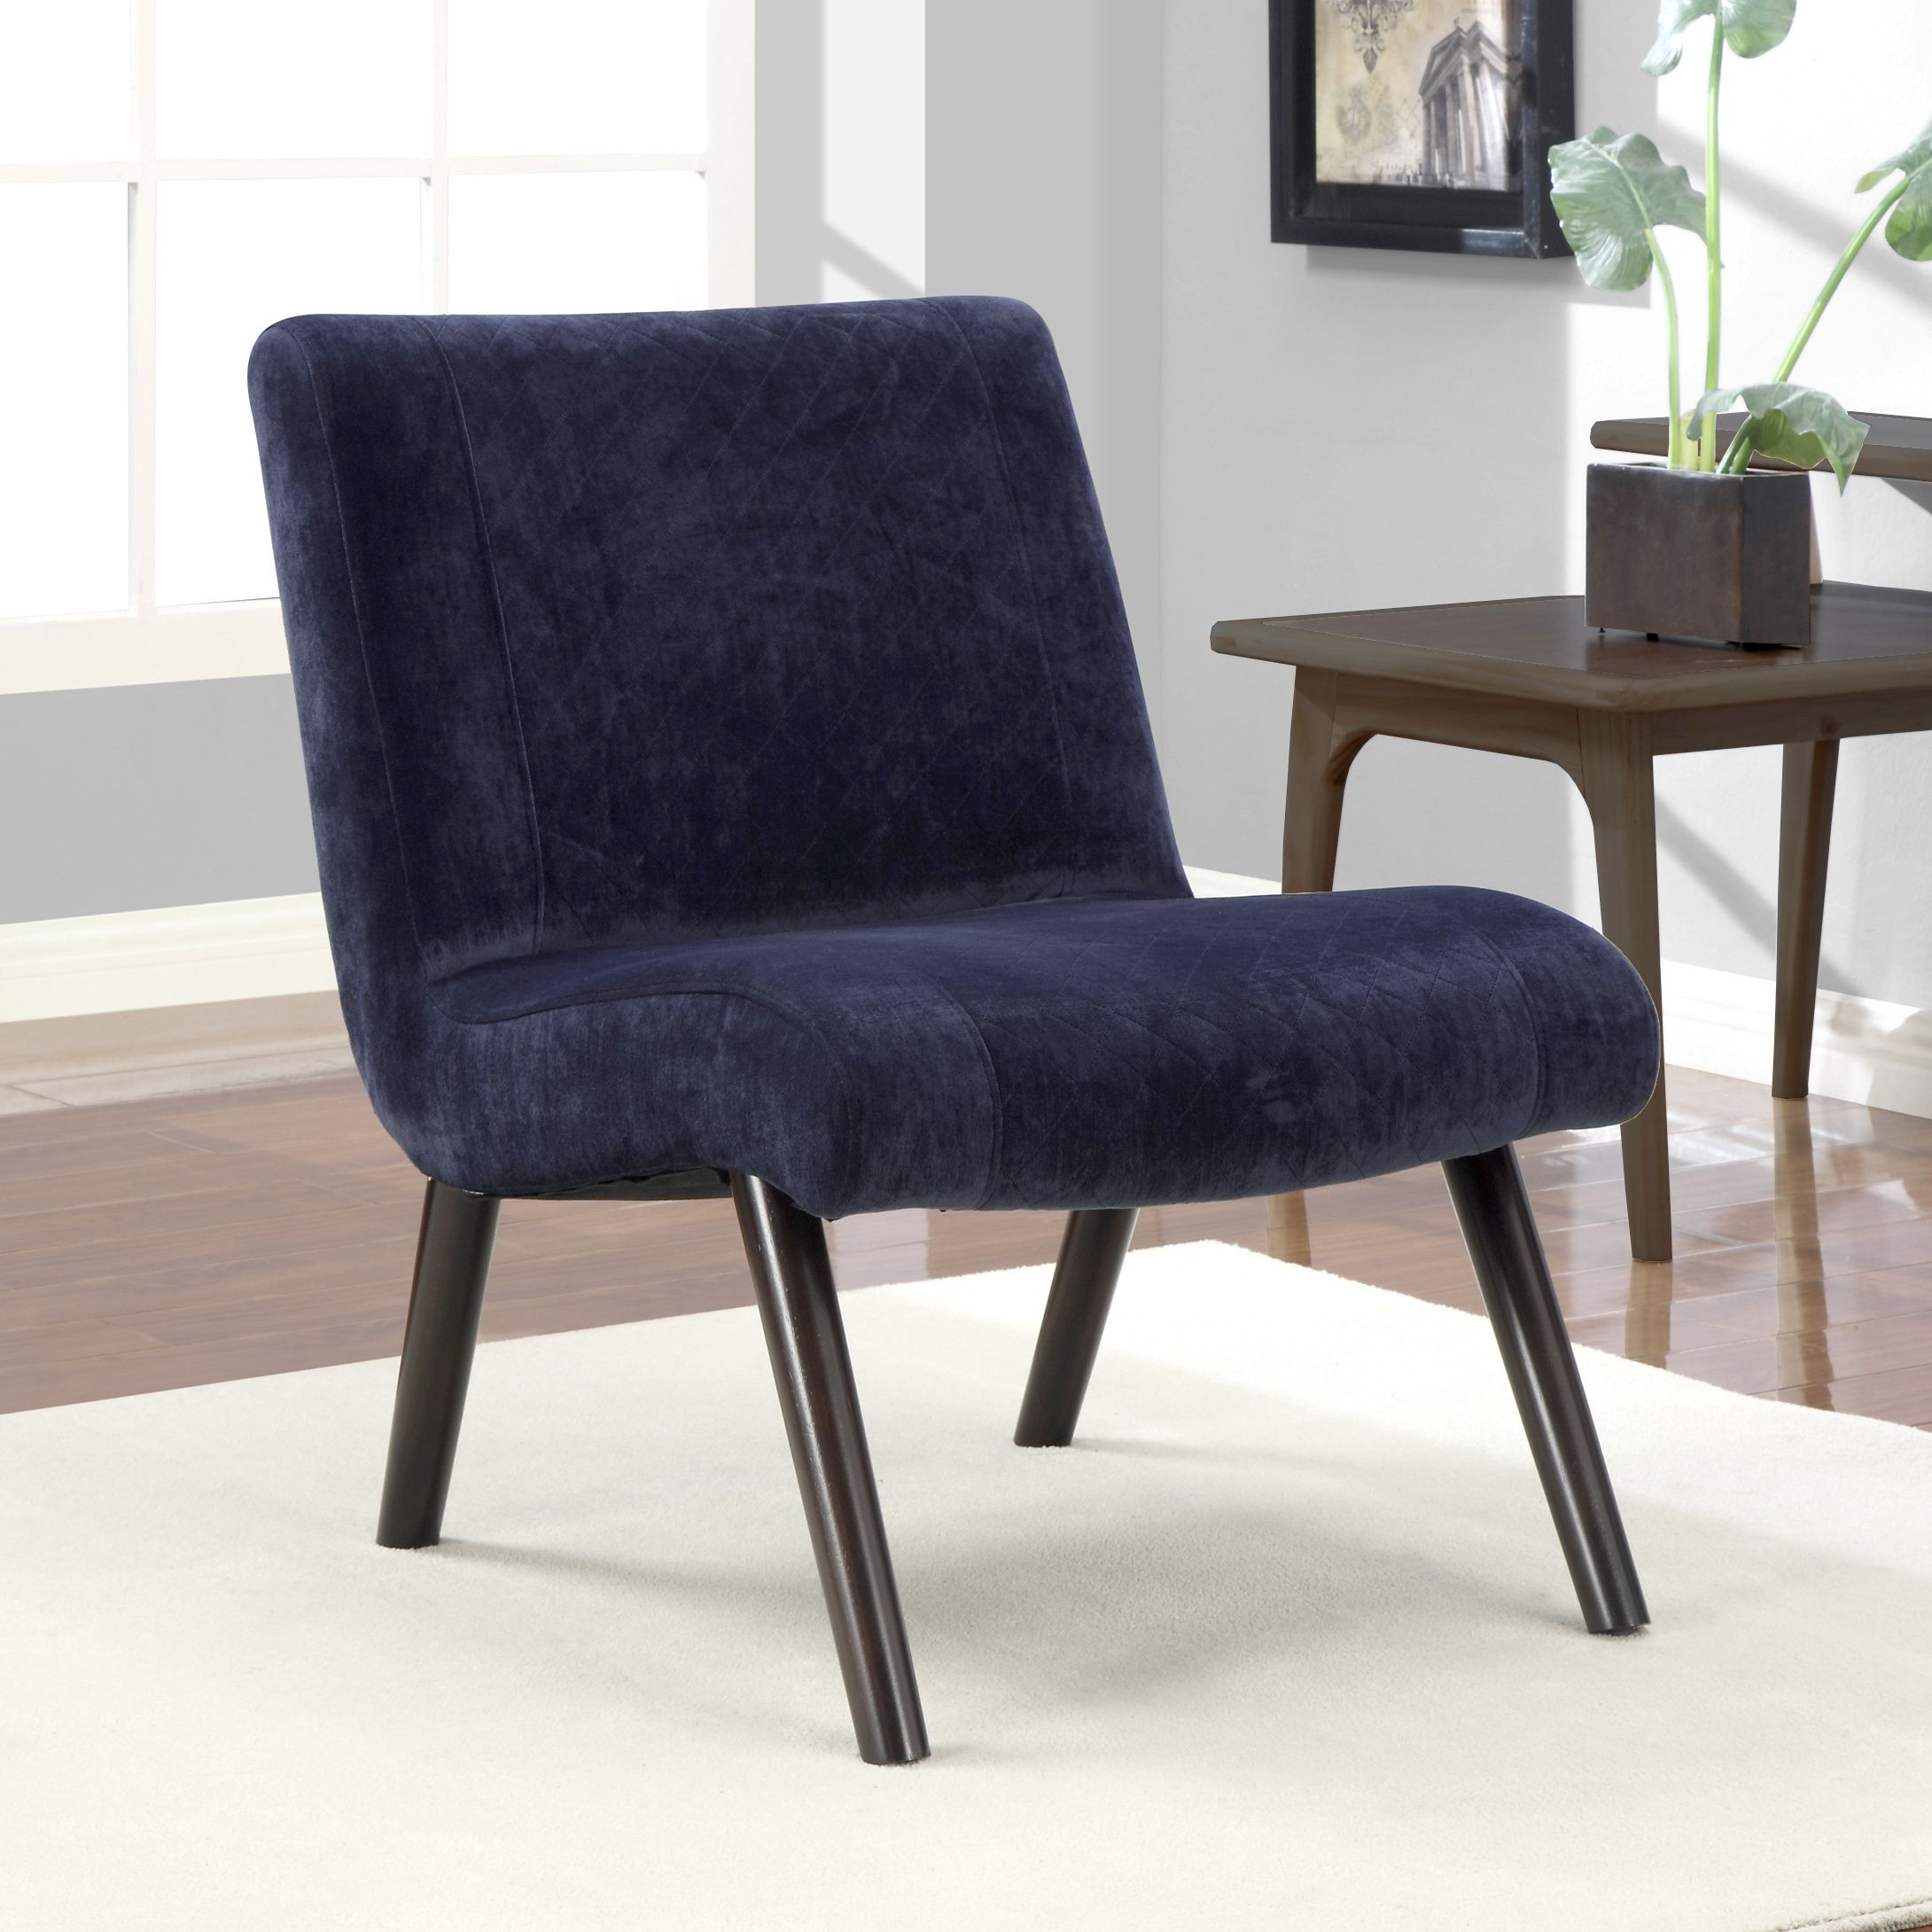 The simple, clean lines of this modern style chair are enhanced by a beautiful quilted section down the center of the chair. This armless chair exhibits a soft velvet like fabric, which makes it a must have for every home.